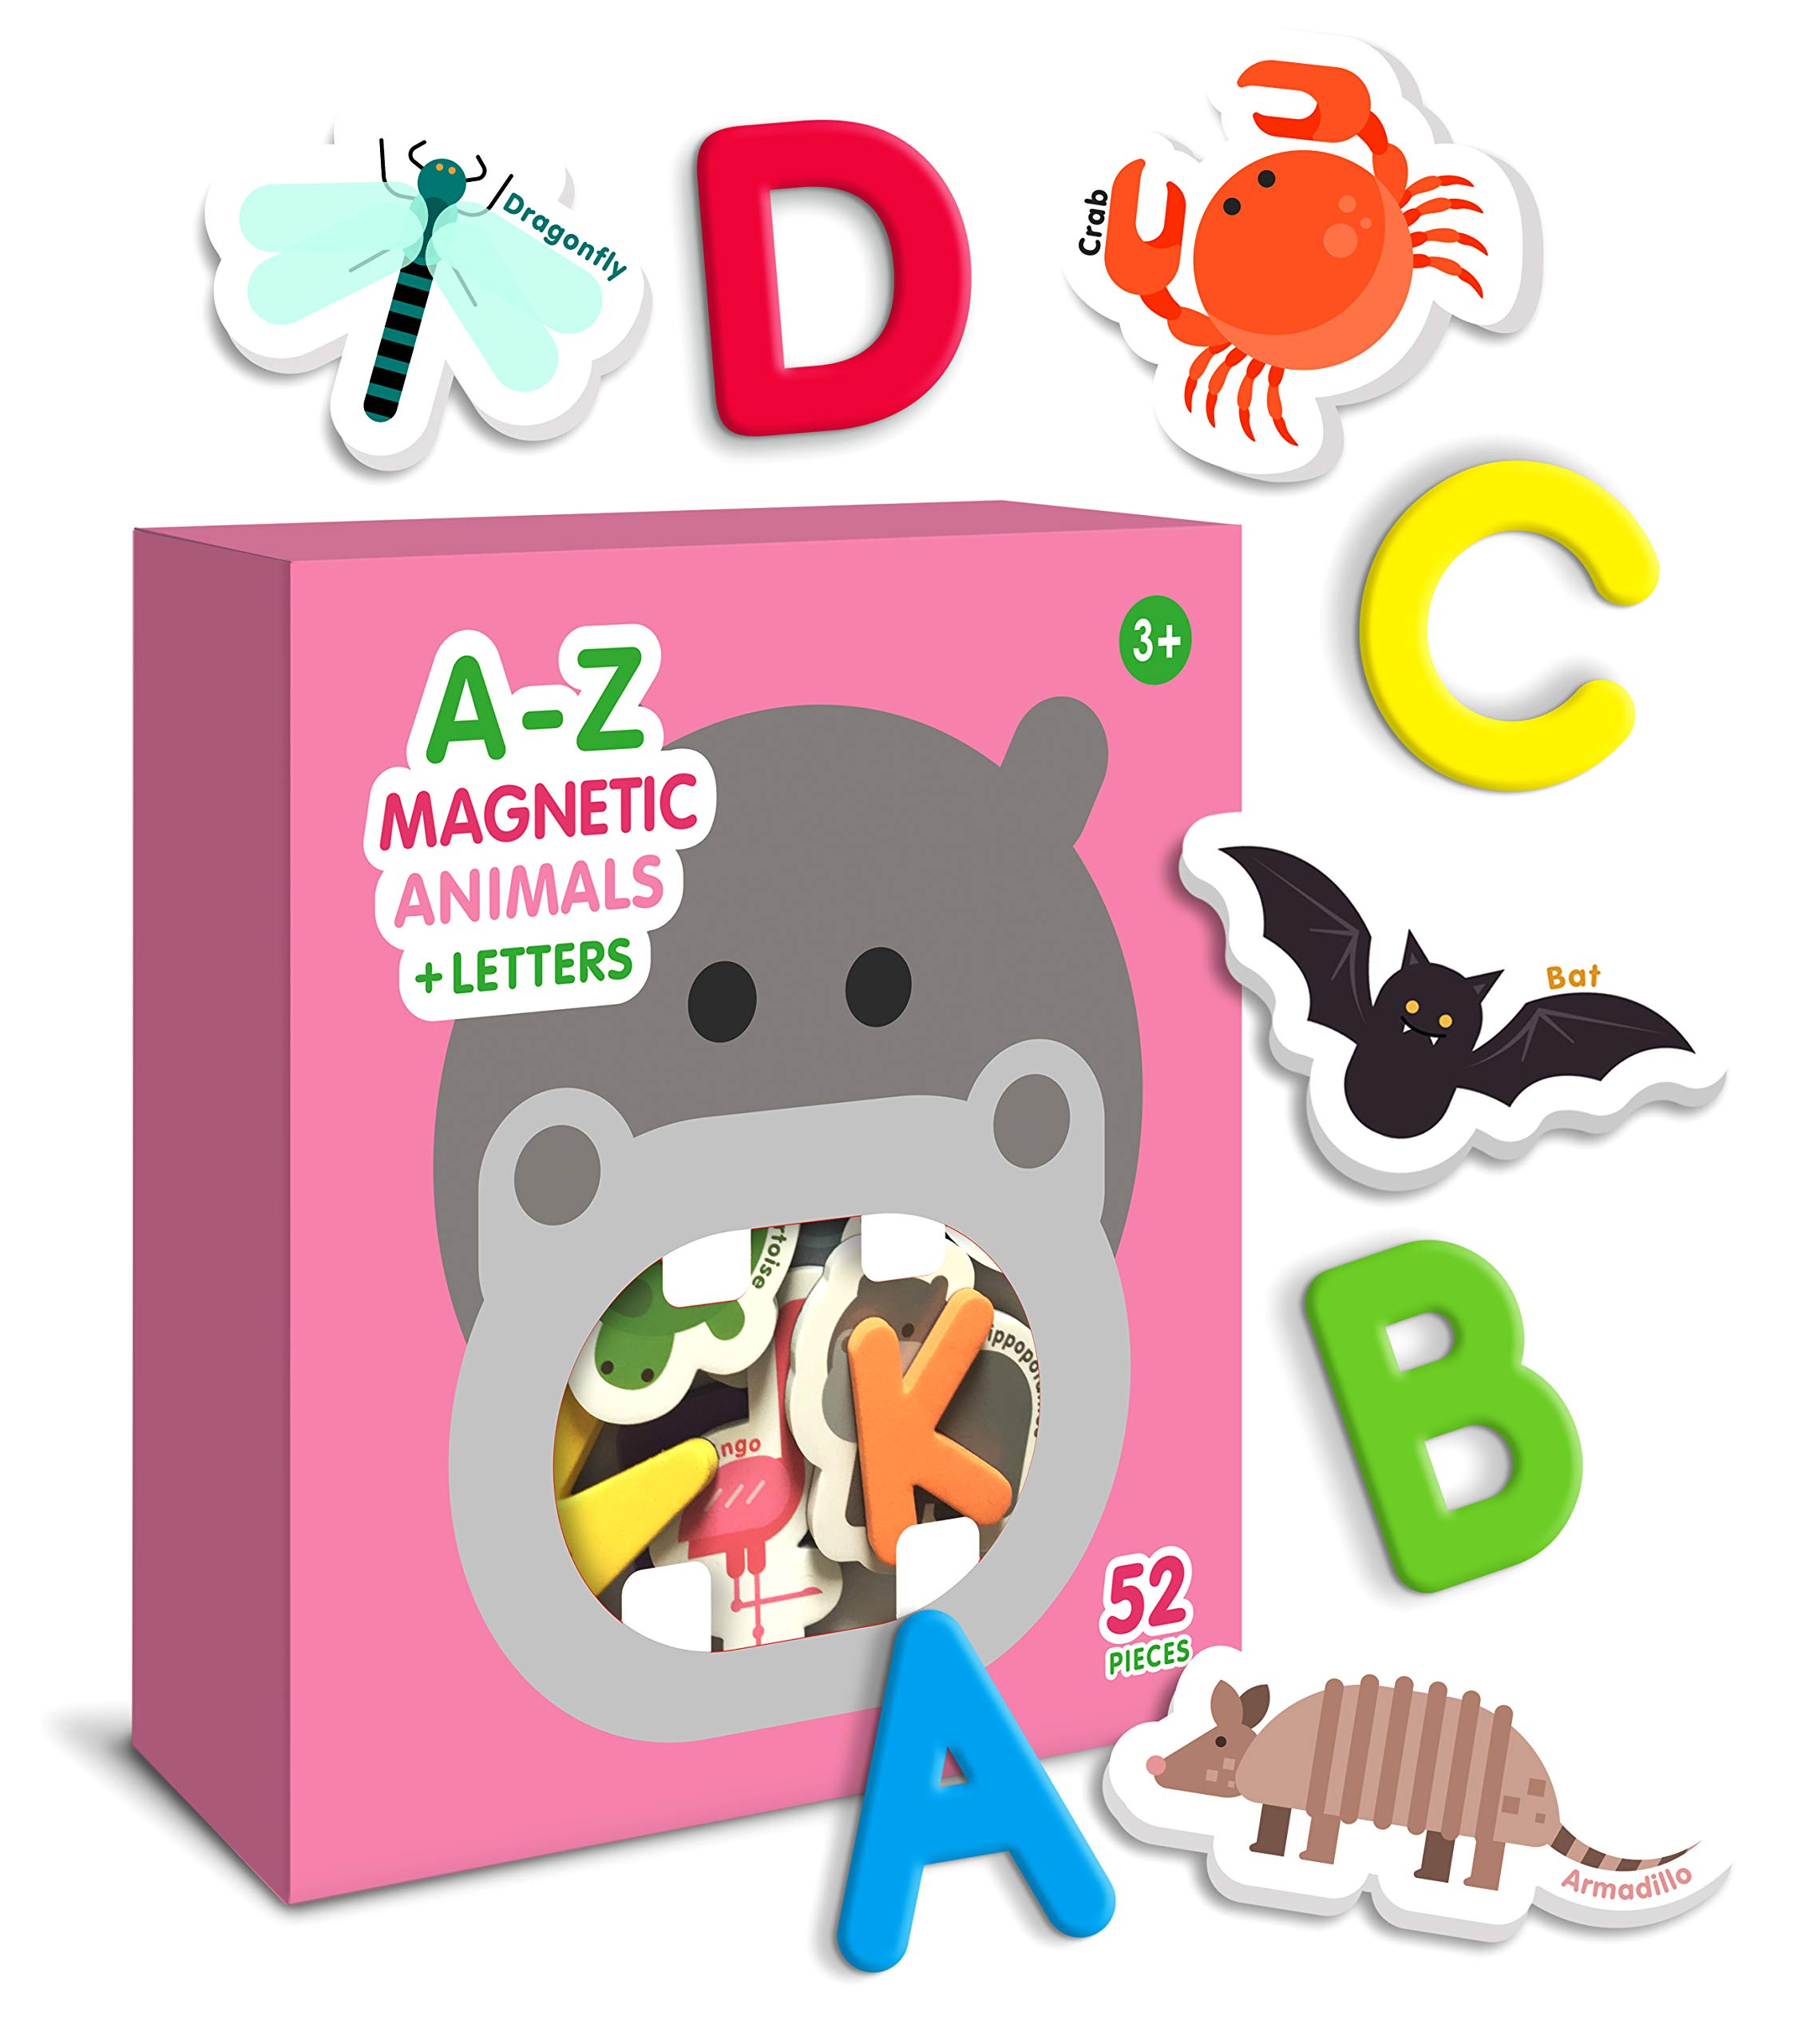 Curious Columbus Animal Magnets For Kids. Includes Alphabet Letters. Set of 52 Pieces. Foam Educational Magnetic Toy Objects For Word Recognition. 26 Picture Fridge Magnets and 26 ABC Letters From A-Z by Curious Columbus (Image #1)